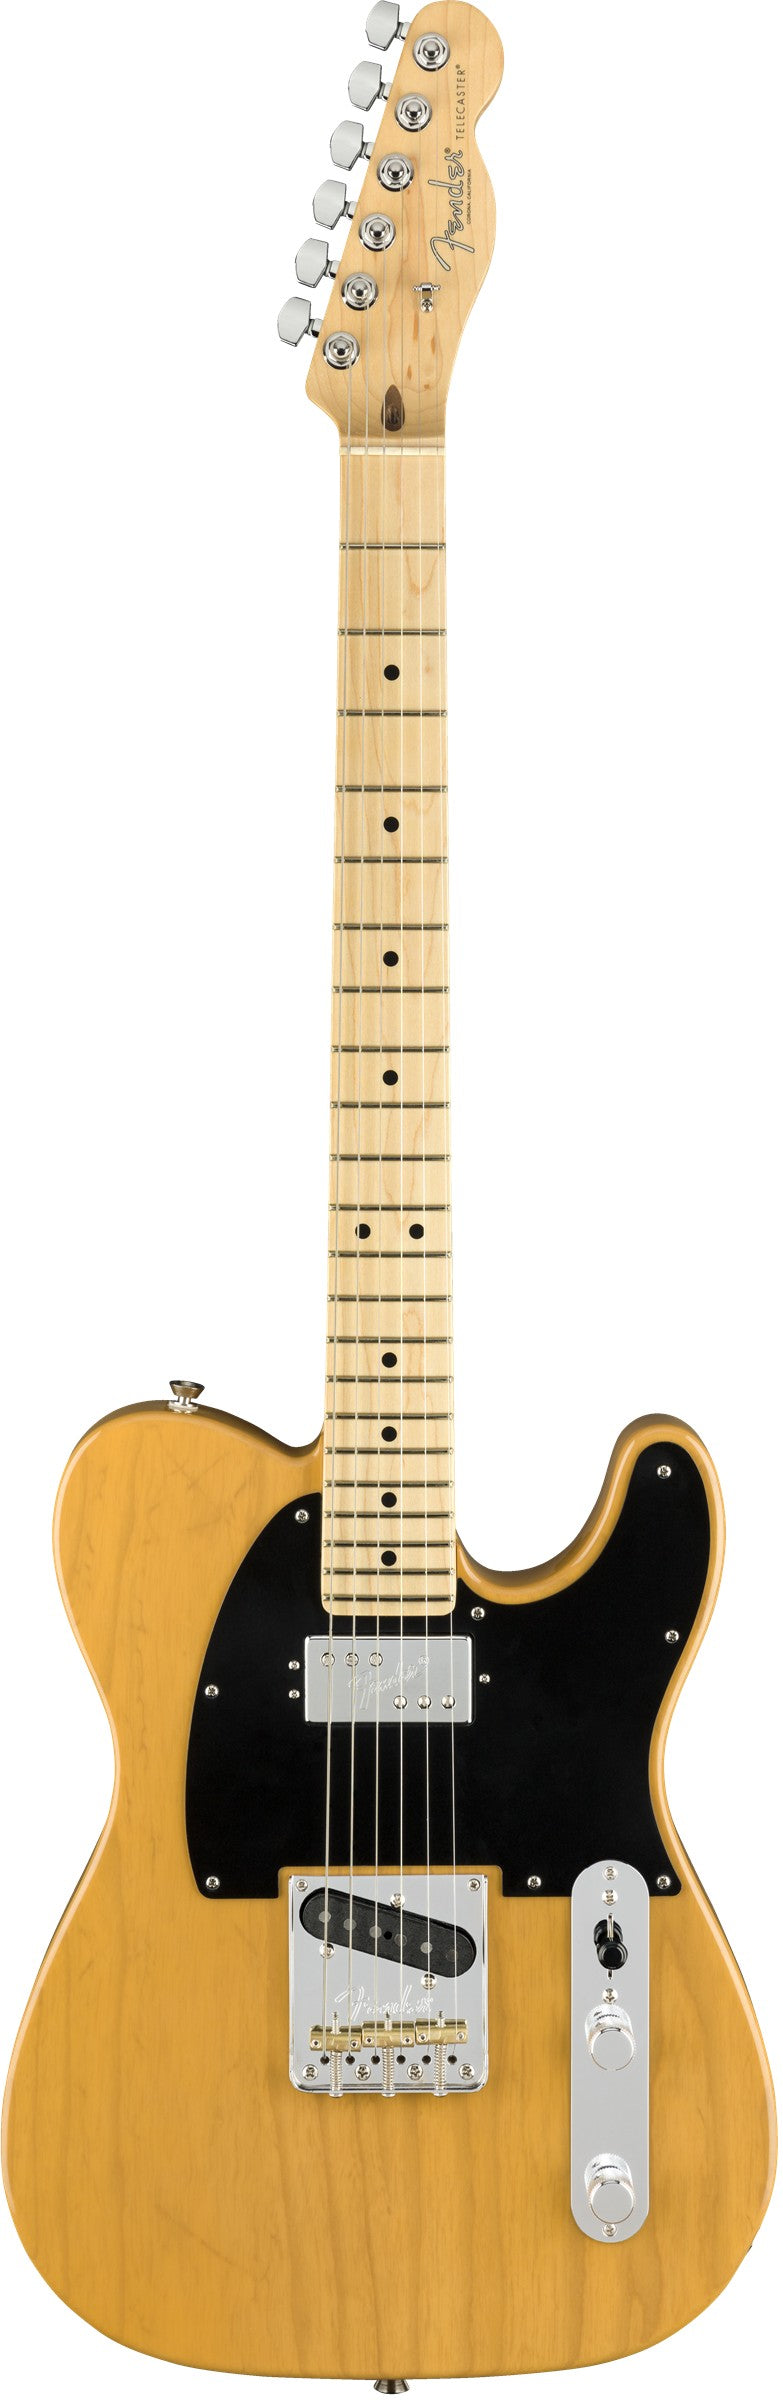 Fender 2018 Limited Edition American Professional Telecaster - Butterscotch Blonde